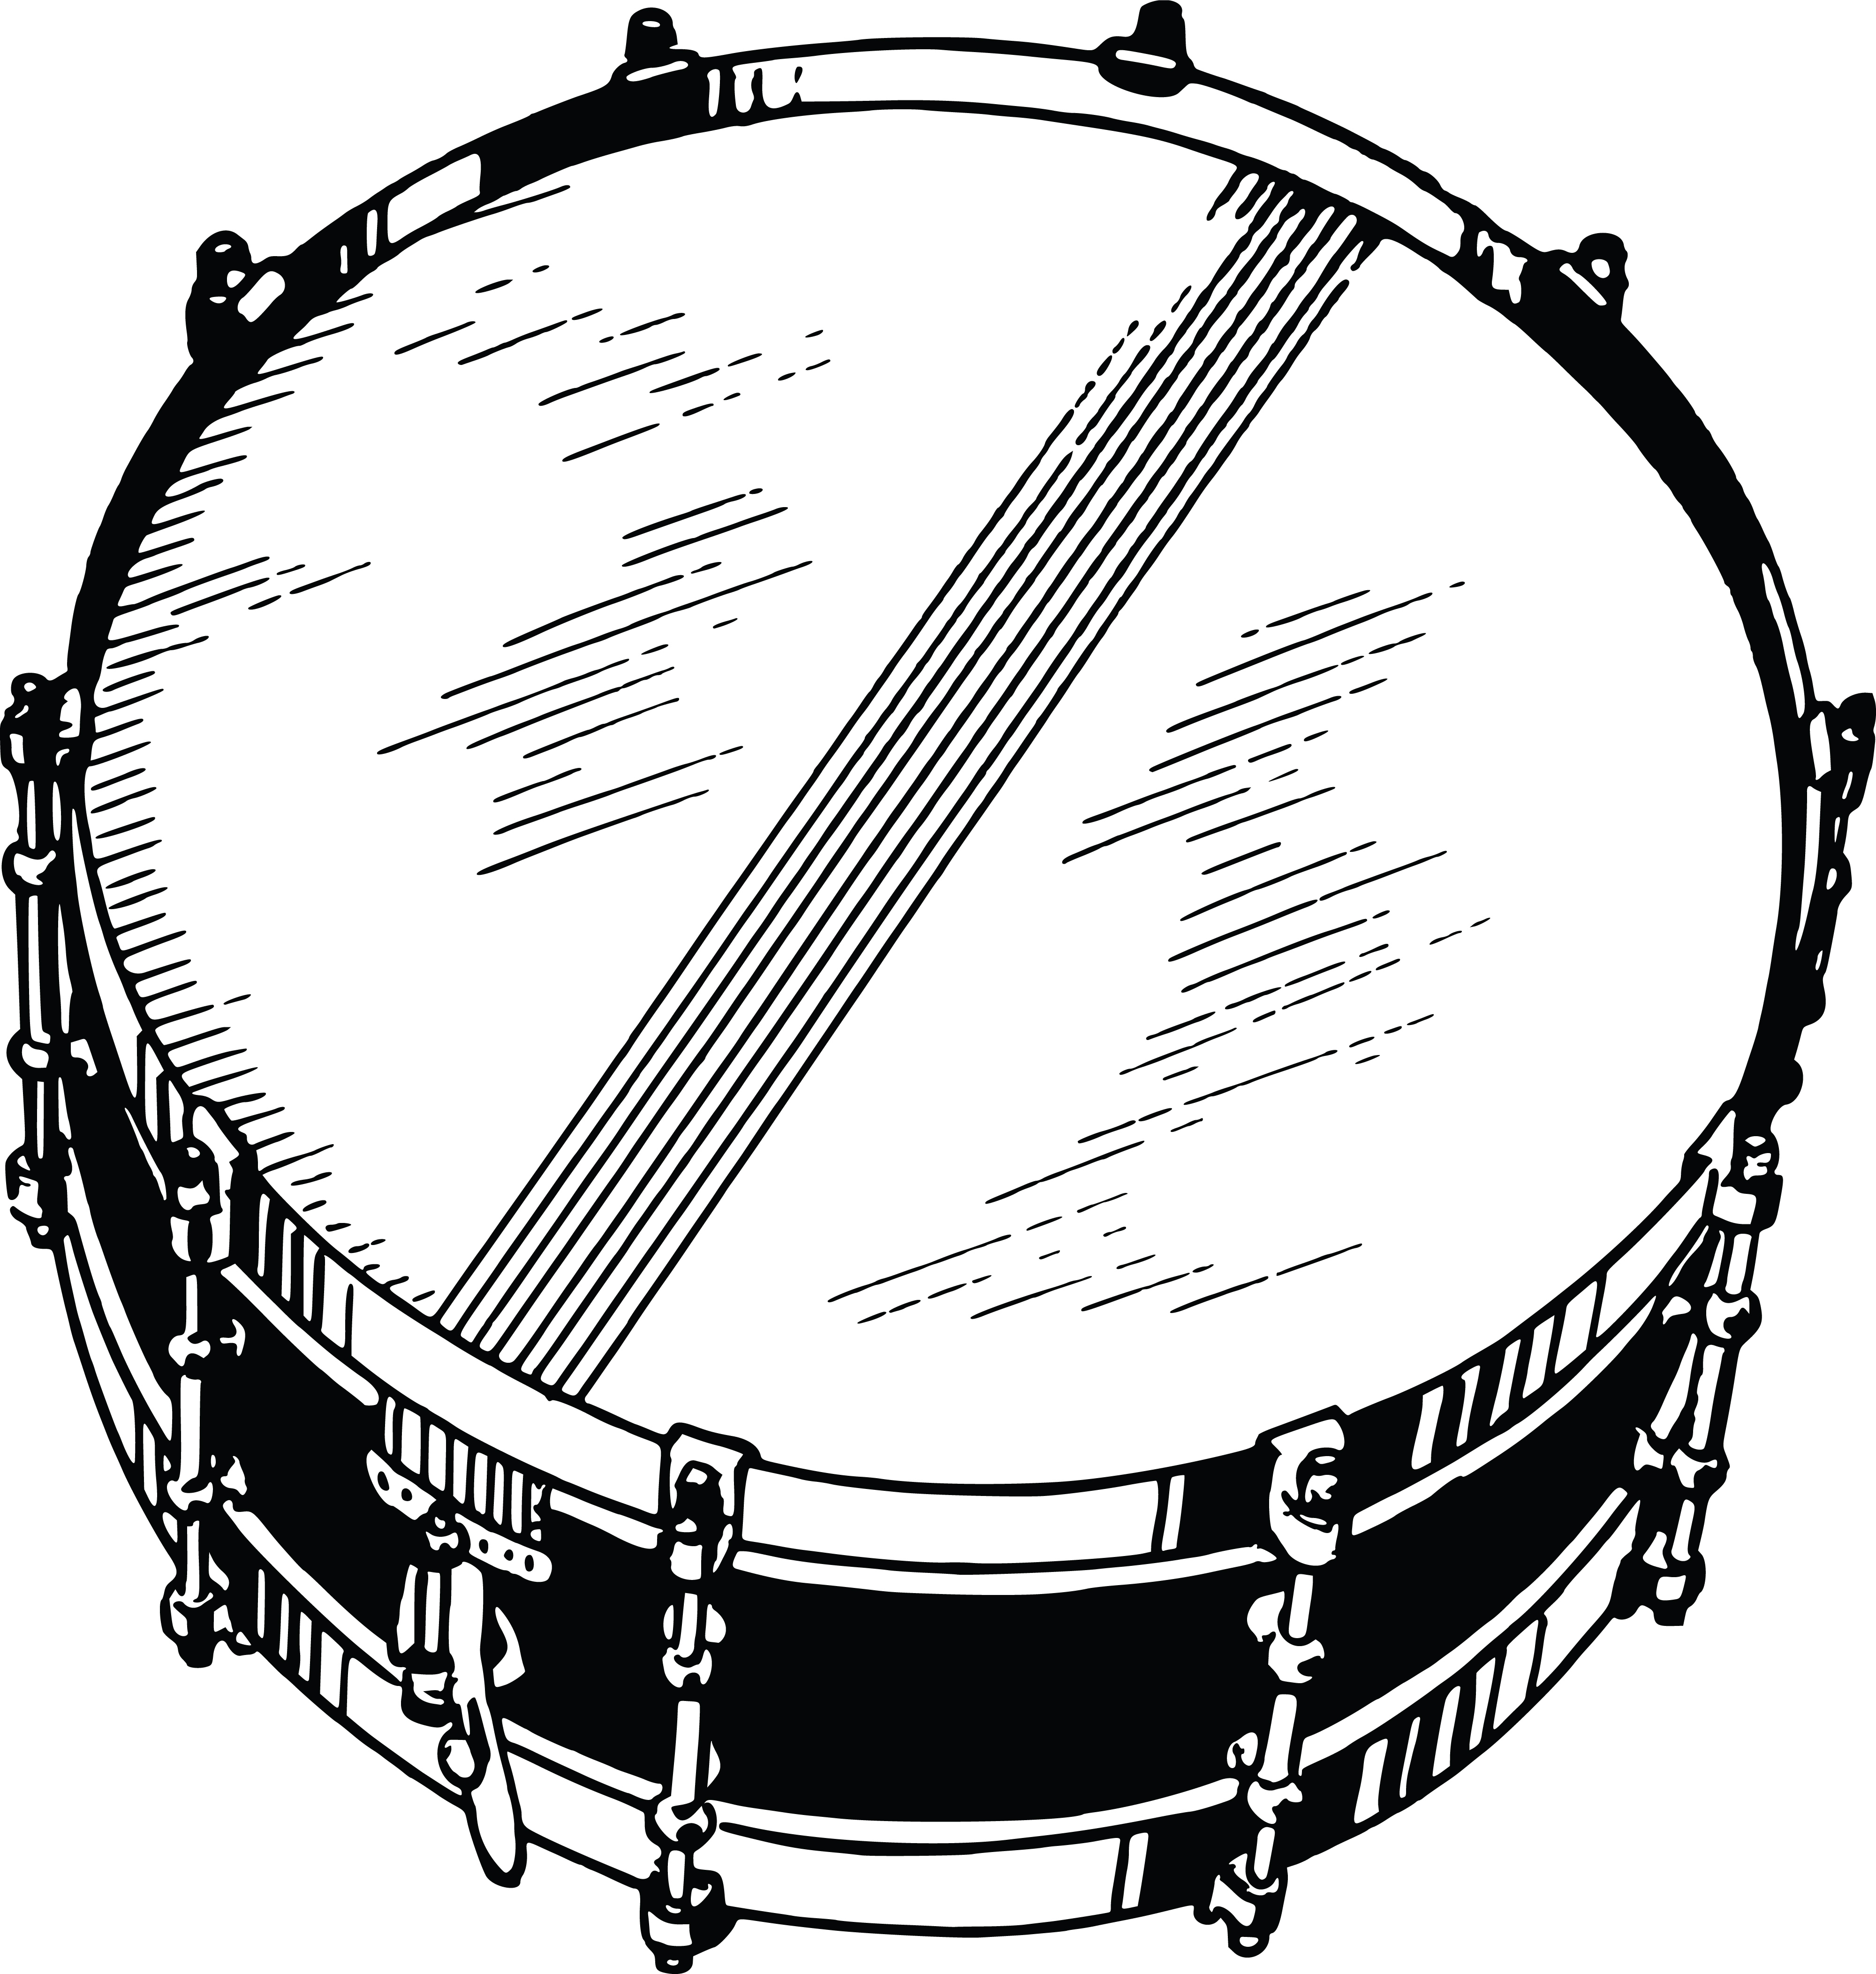 free clipart of a snare drum rh free clipartof com Snare Drum Drawing Snare Drum Clip Art Template